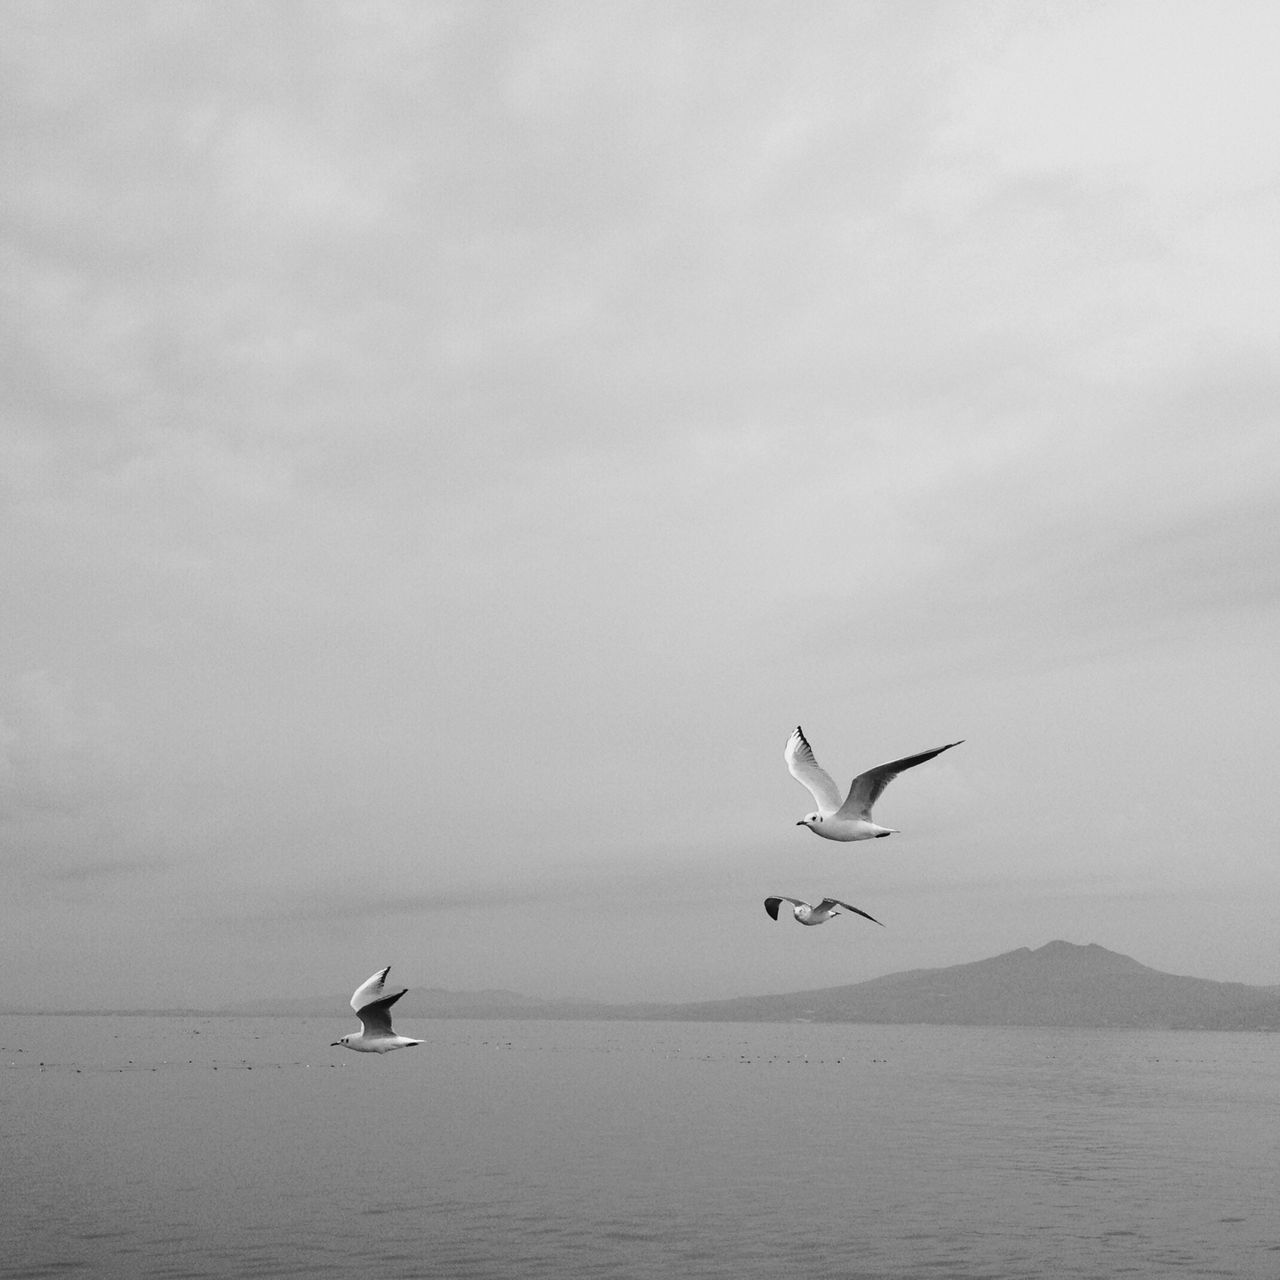 animal wildlife, animals in the wild, animal themes, bird, animal, flying, vertebrate, water, sky, sea, beauty in nature, scenics - nature, spread wings, group of animals, waterfront, cloud - sky, no people, nature, tranquil scene, seagull, horizon over water, outdoors